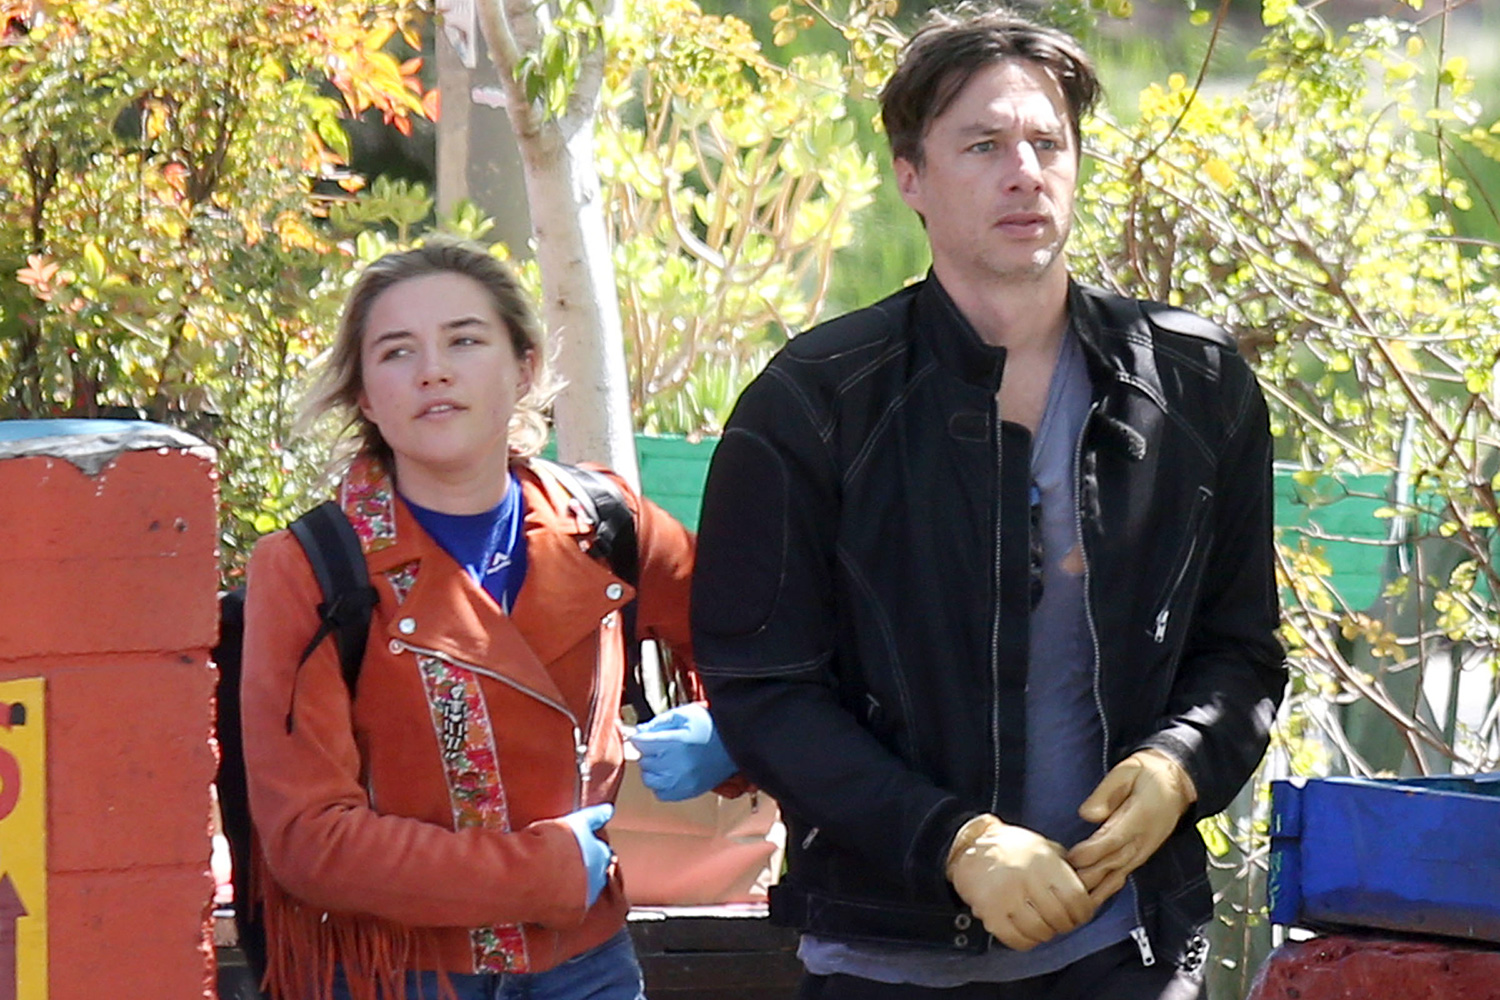 Florence Pugh And Zach Braff Take A Bike Ride To Pick Up Some Essentials During The Los Angeles Lockdown To Help Fight The Spread Of The Coronavirus Pandemic